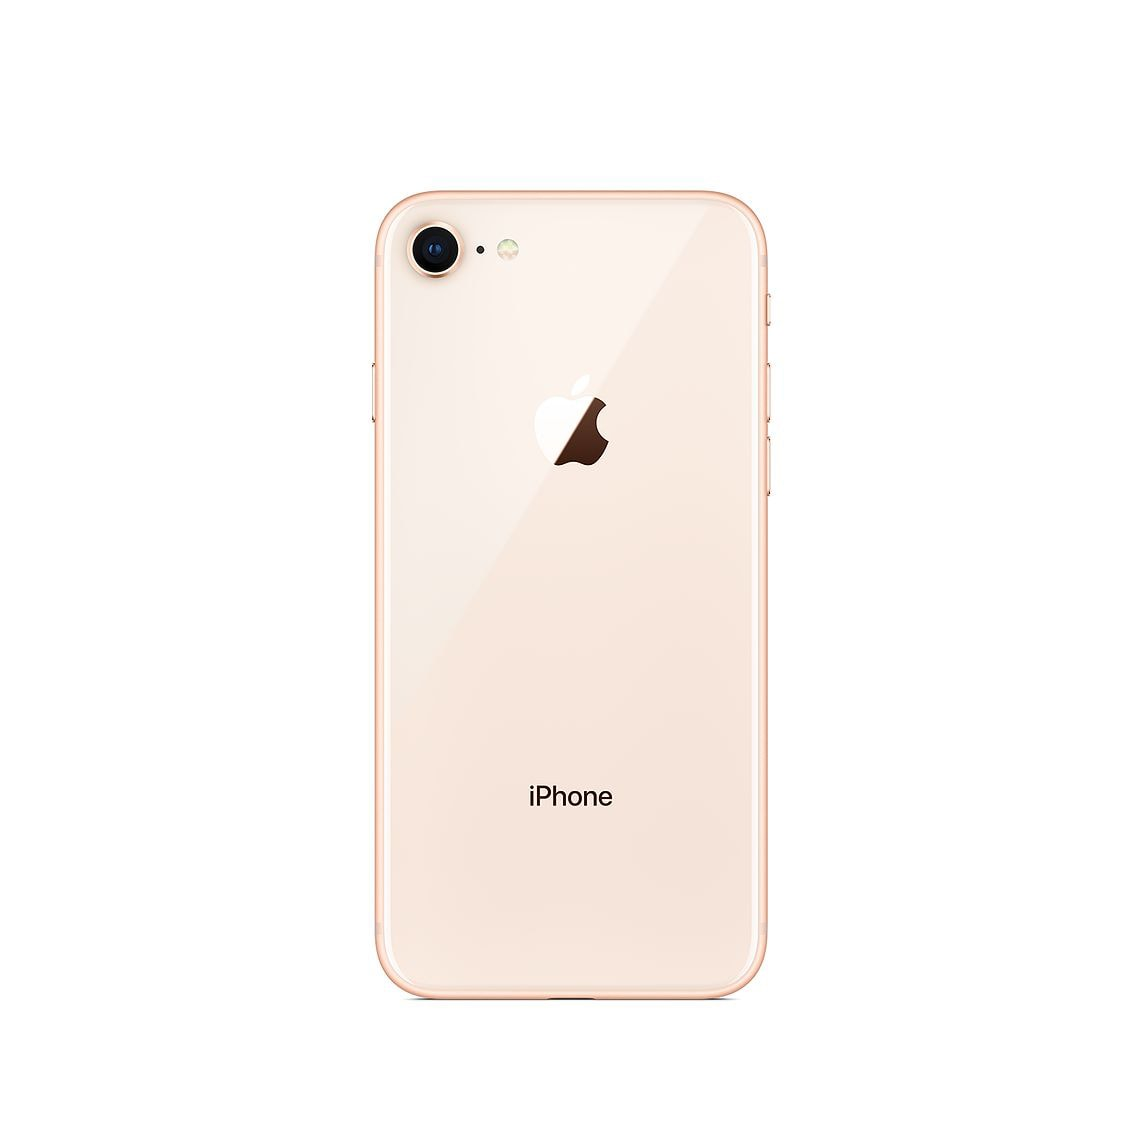 Apple IPhone 8 Rose Gold 64GB Unlocked Sim-Free Retina Mobile Phone Refurbished 12 Months Warranty